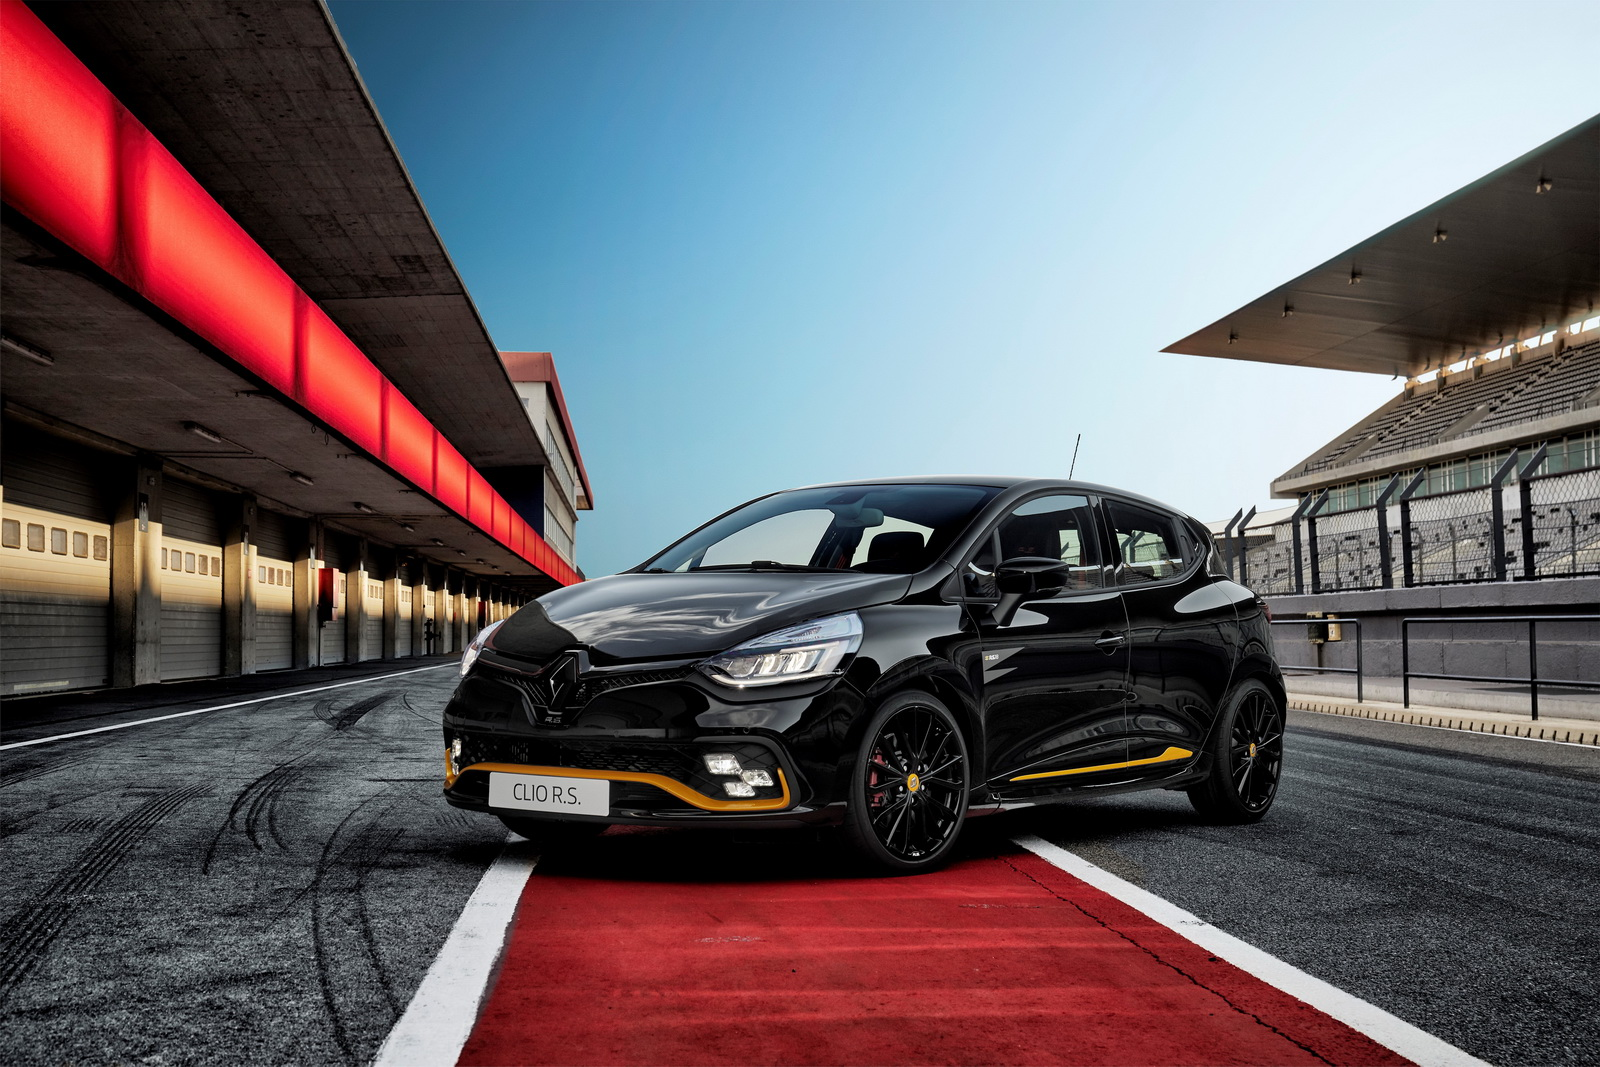 Renault Sport, a subdivision of the worldwide known French car company Renault, has posted an image of a facelifted Renault Clio R.S. sporty high-end hatchback